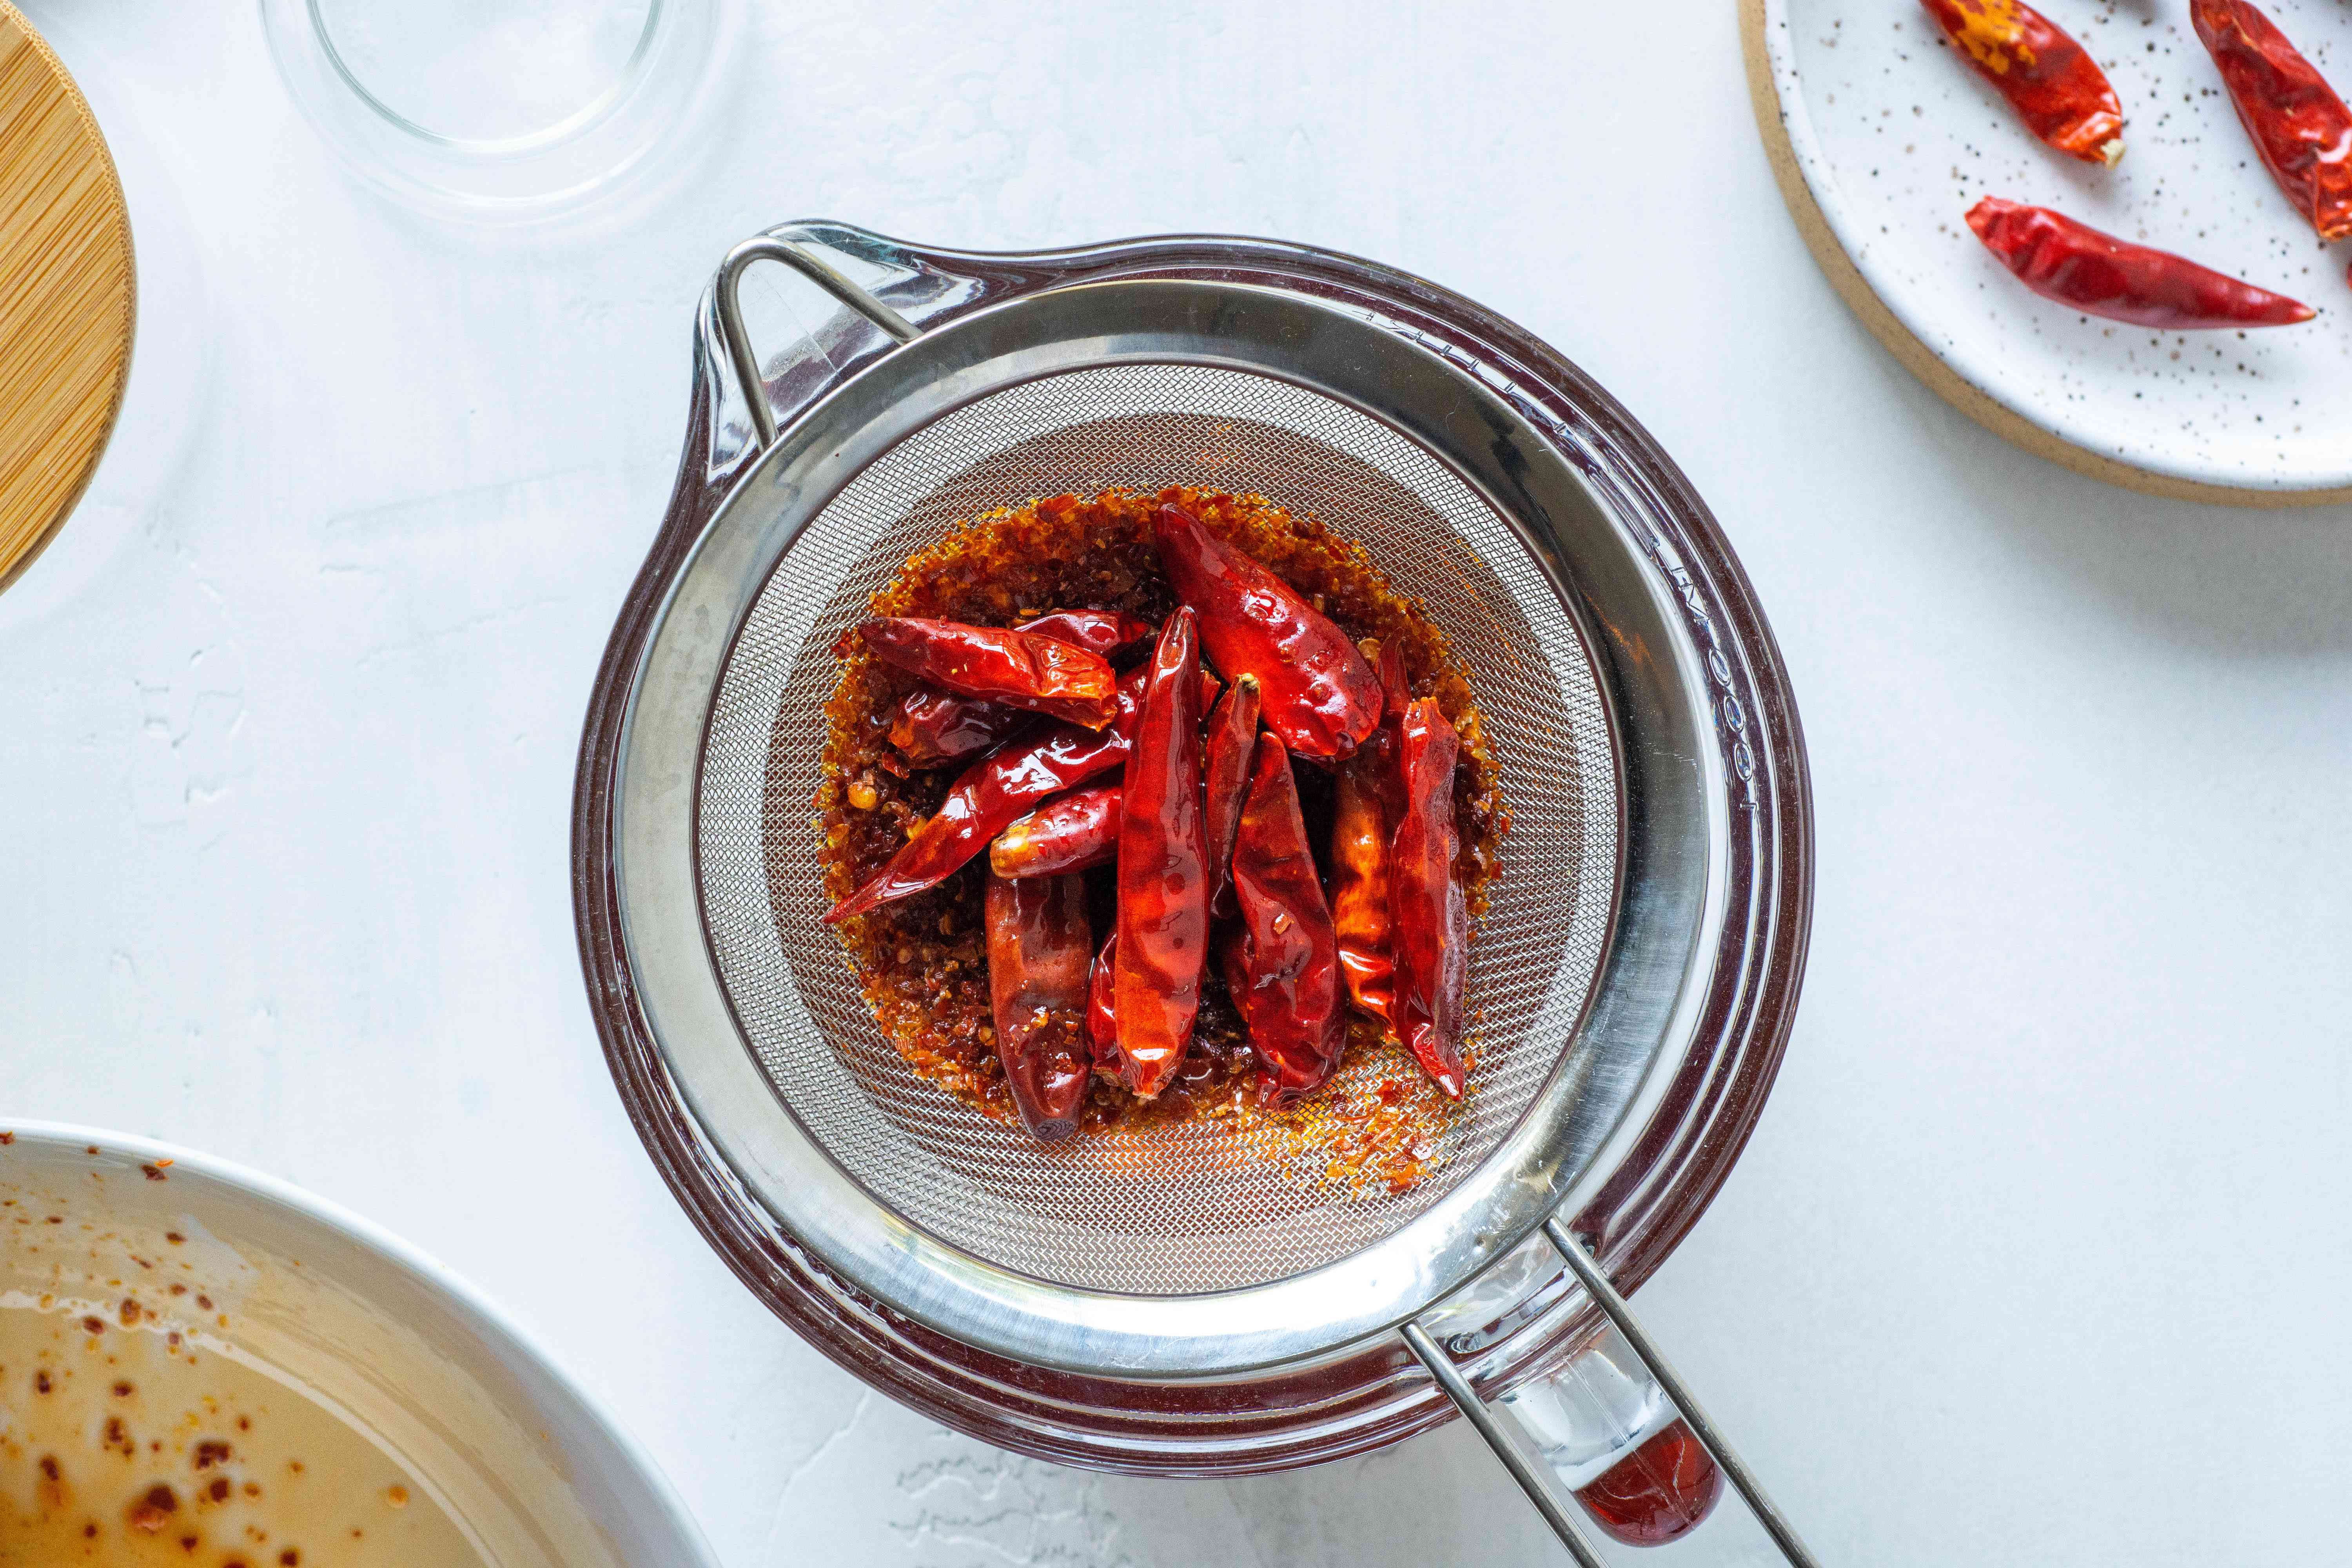 crushed and whole Chiles in a metal strainer